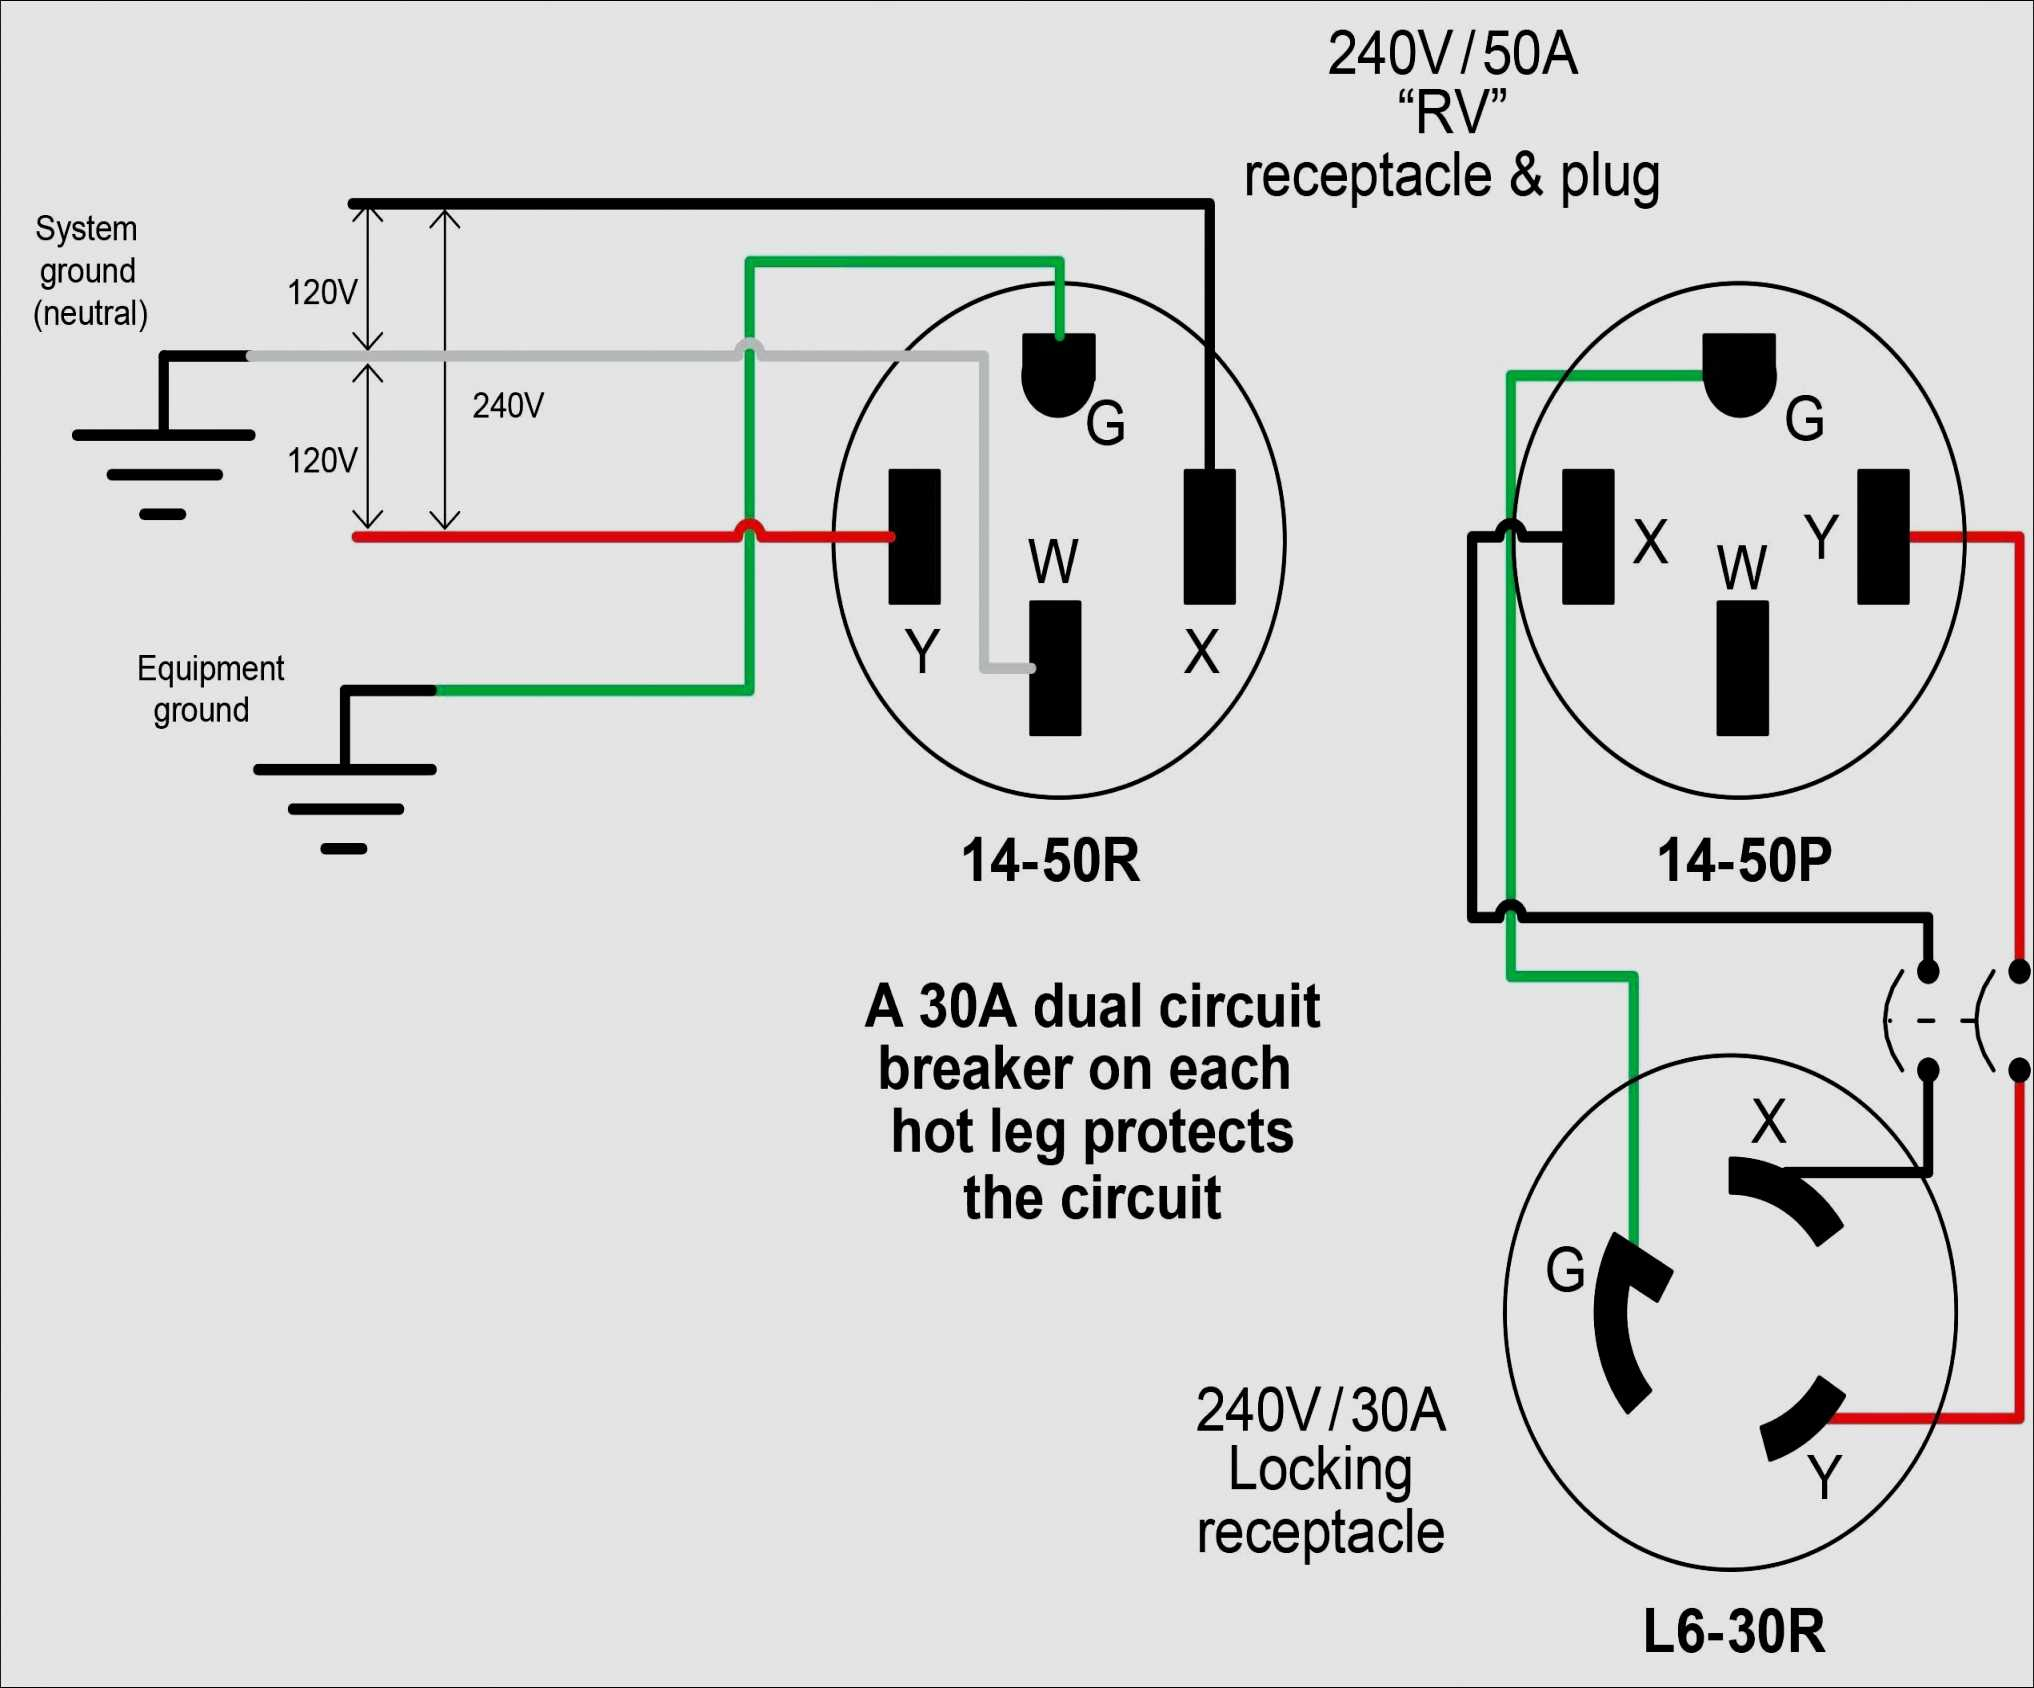 7 Pin Rv Trailer Connector Wiring Diagram - Wiring Diagrams - 7 Pin Rv Trailer Connector Wiring Diagram